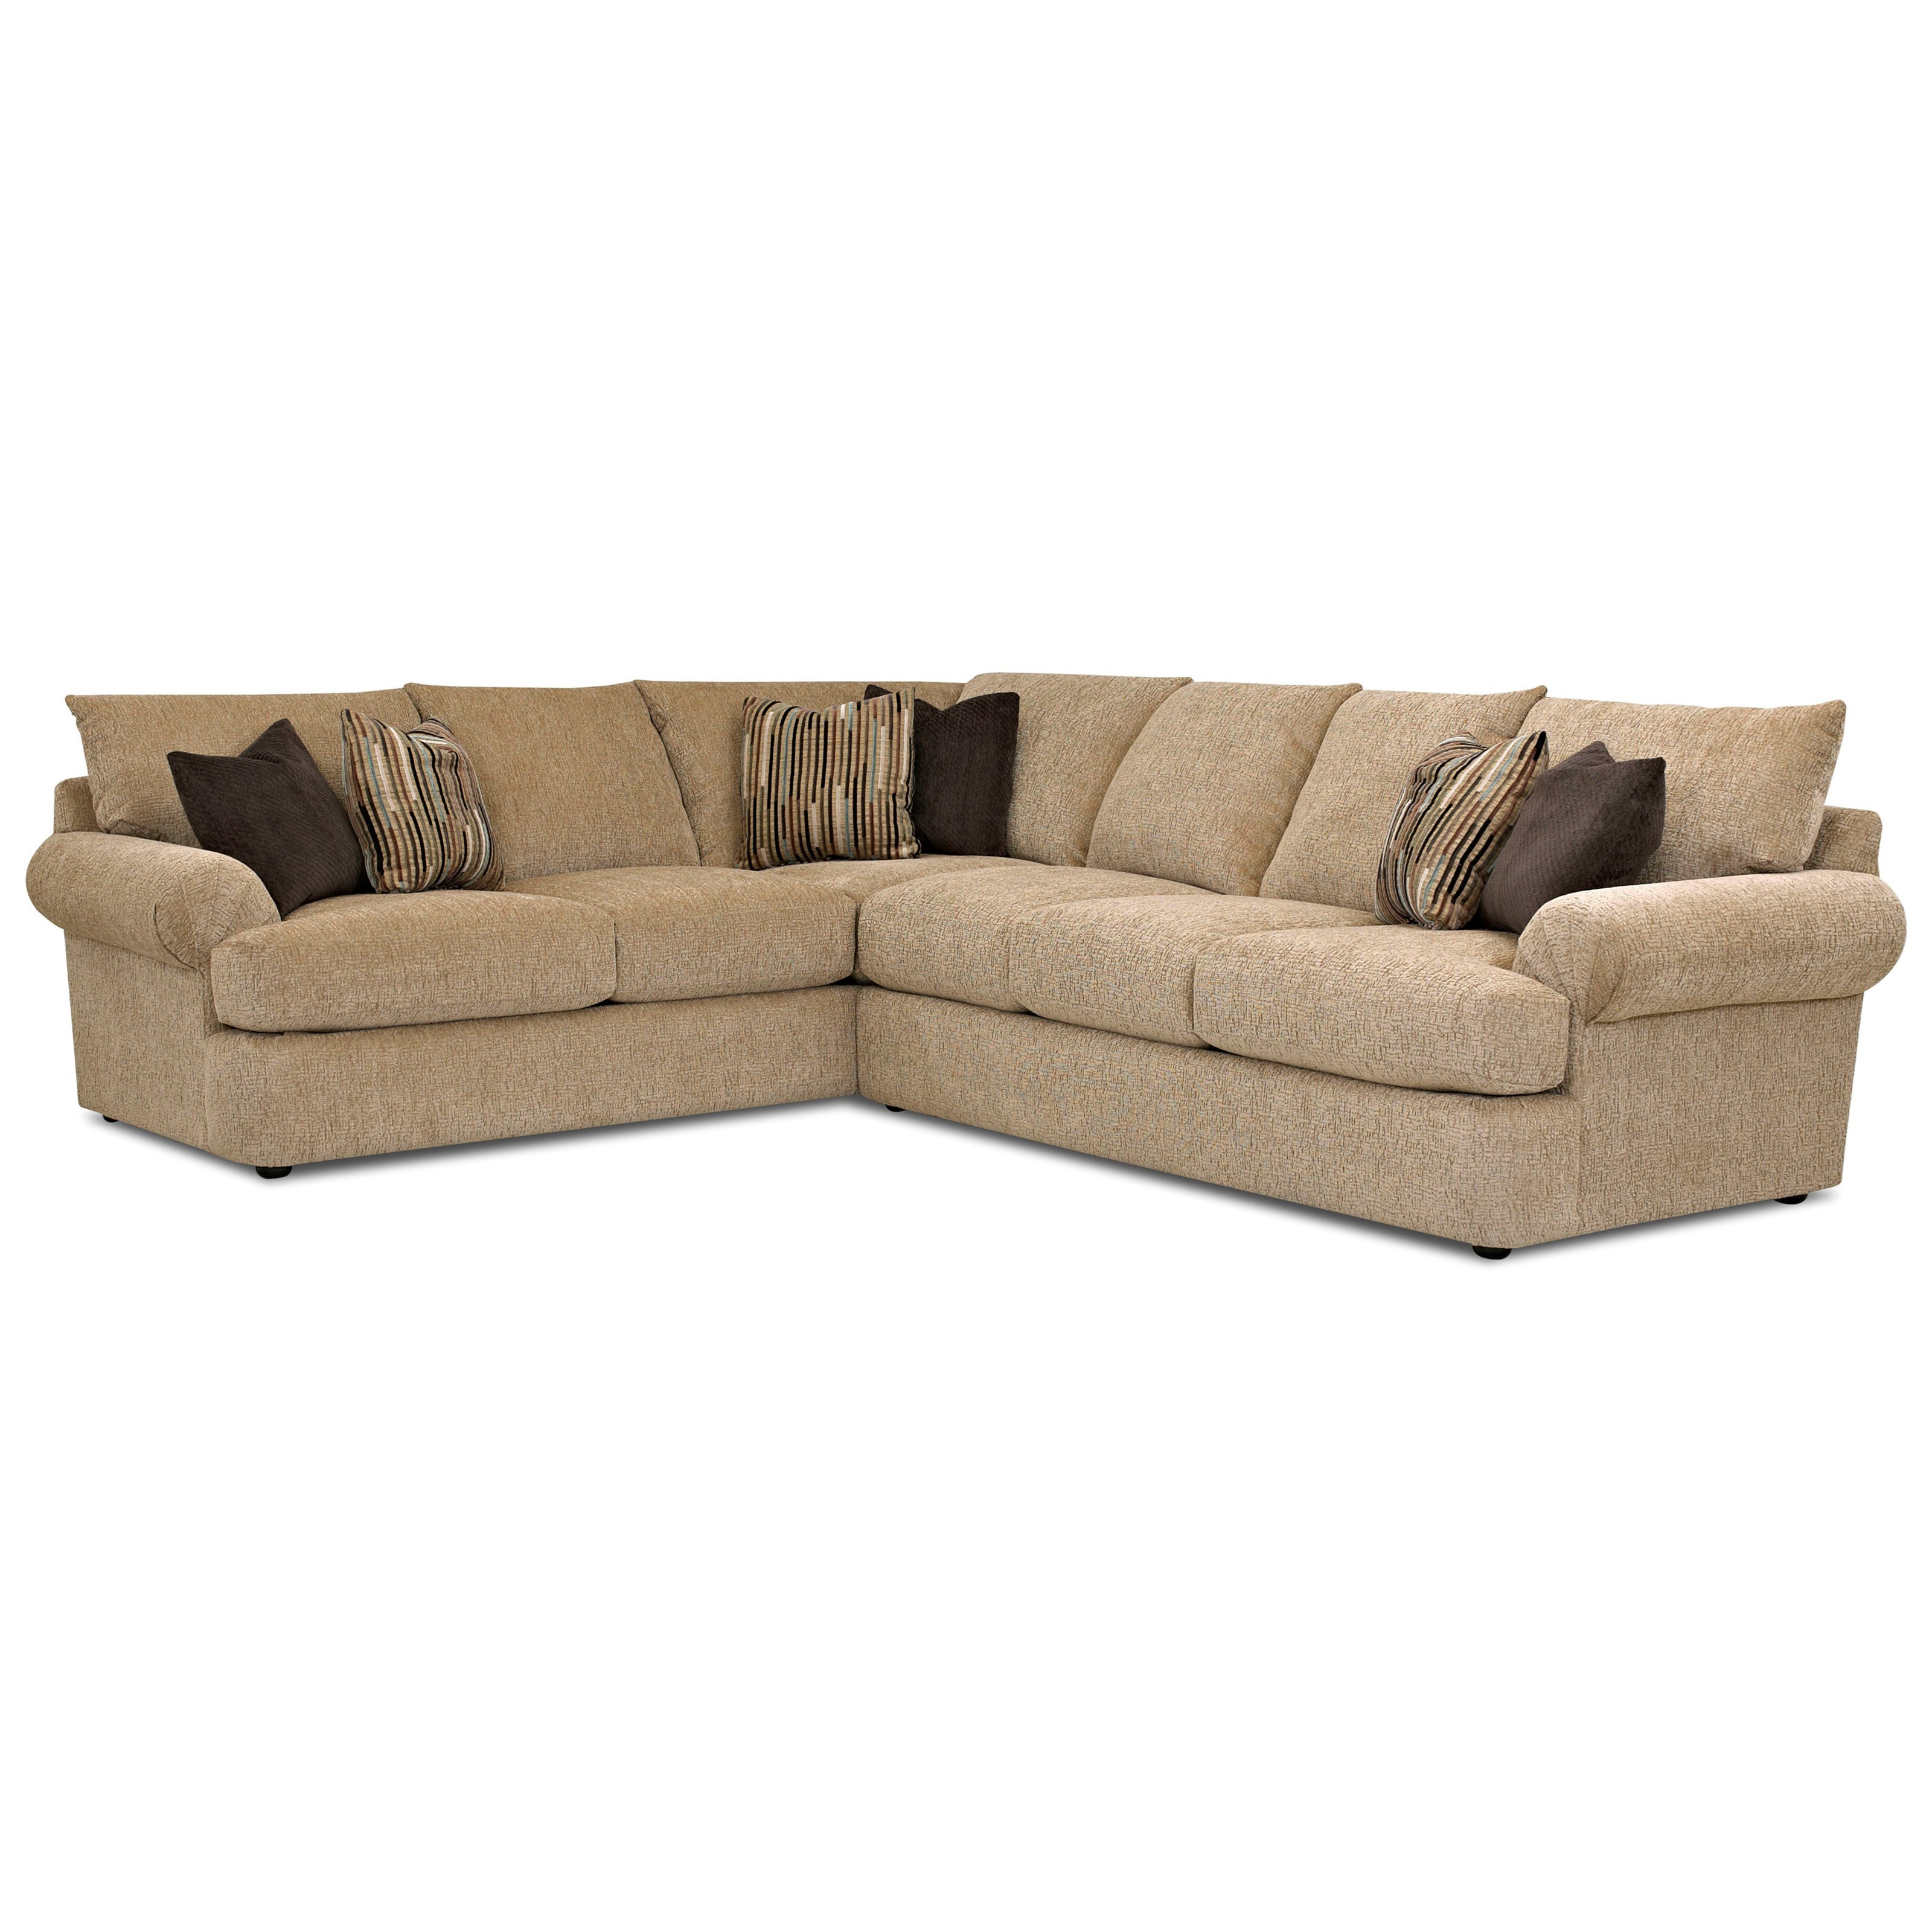 Samantha 2 Pc Sectional Sofa by Klaussner at Johnny Janosik